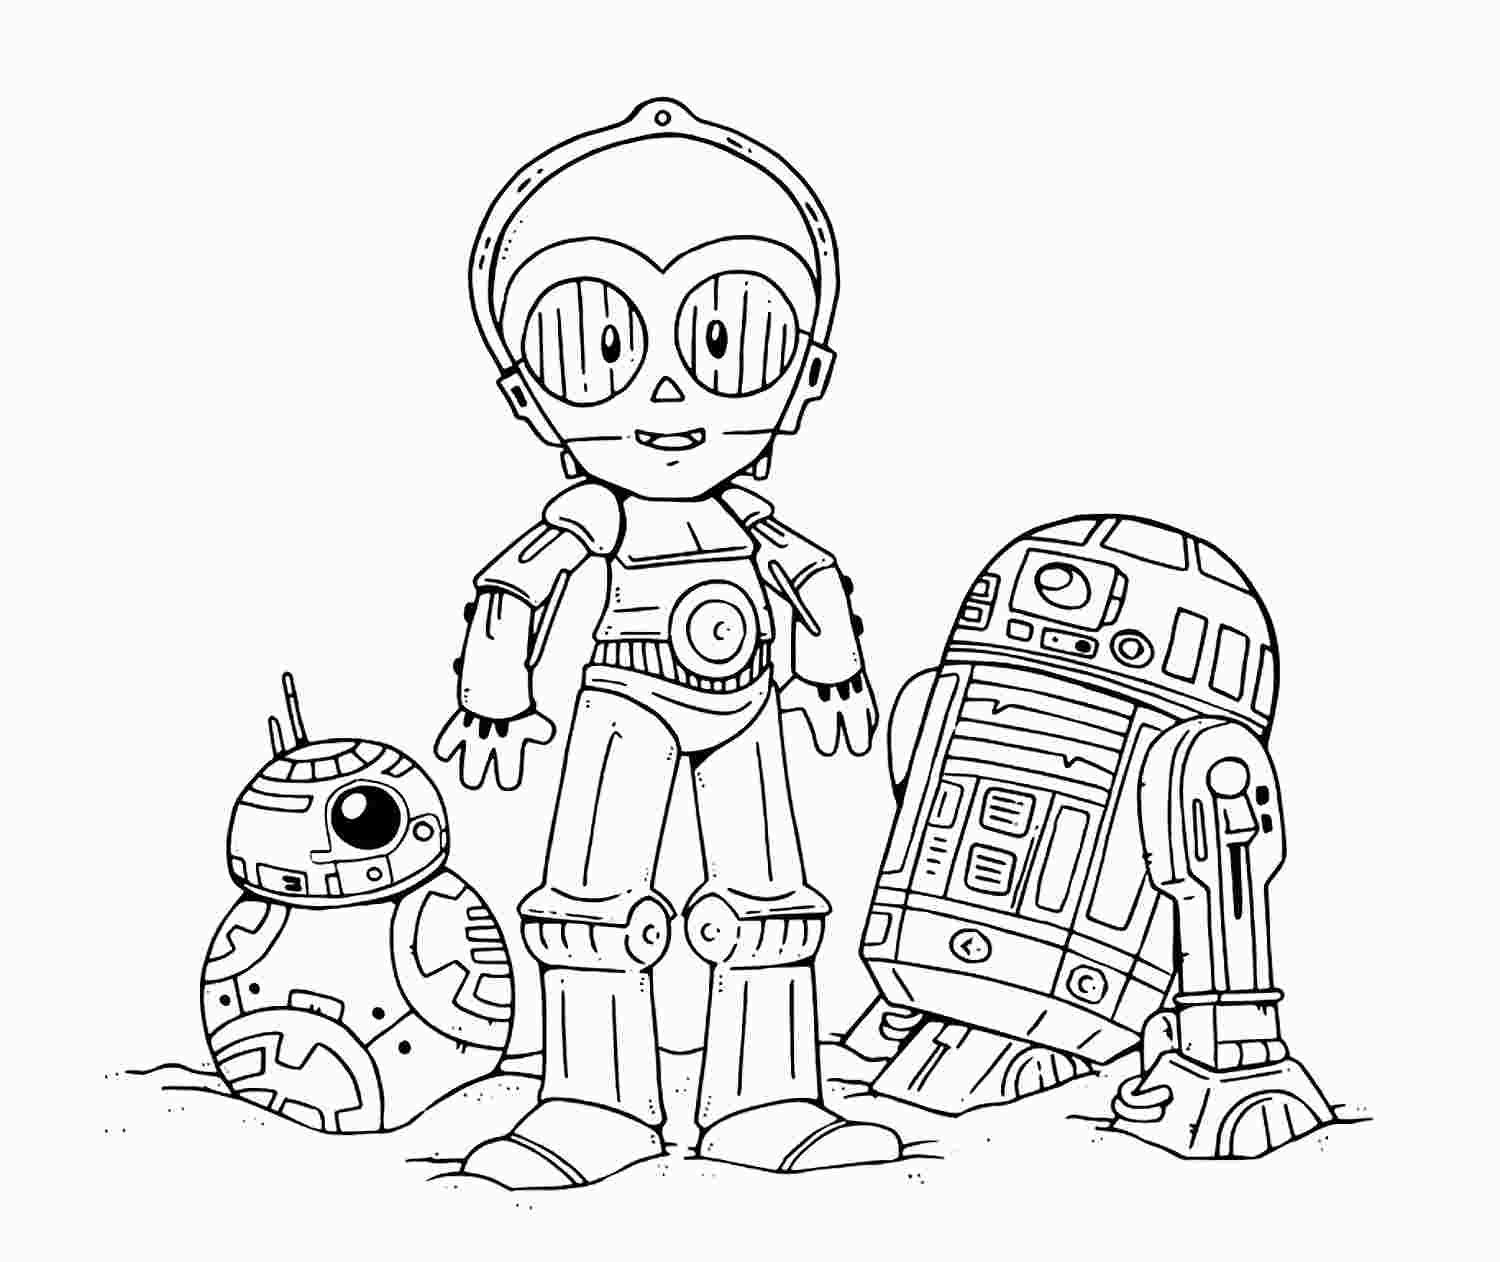 yoda colouring pages baby yoda coloring page bubakidscom colouring pages yoda